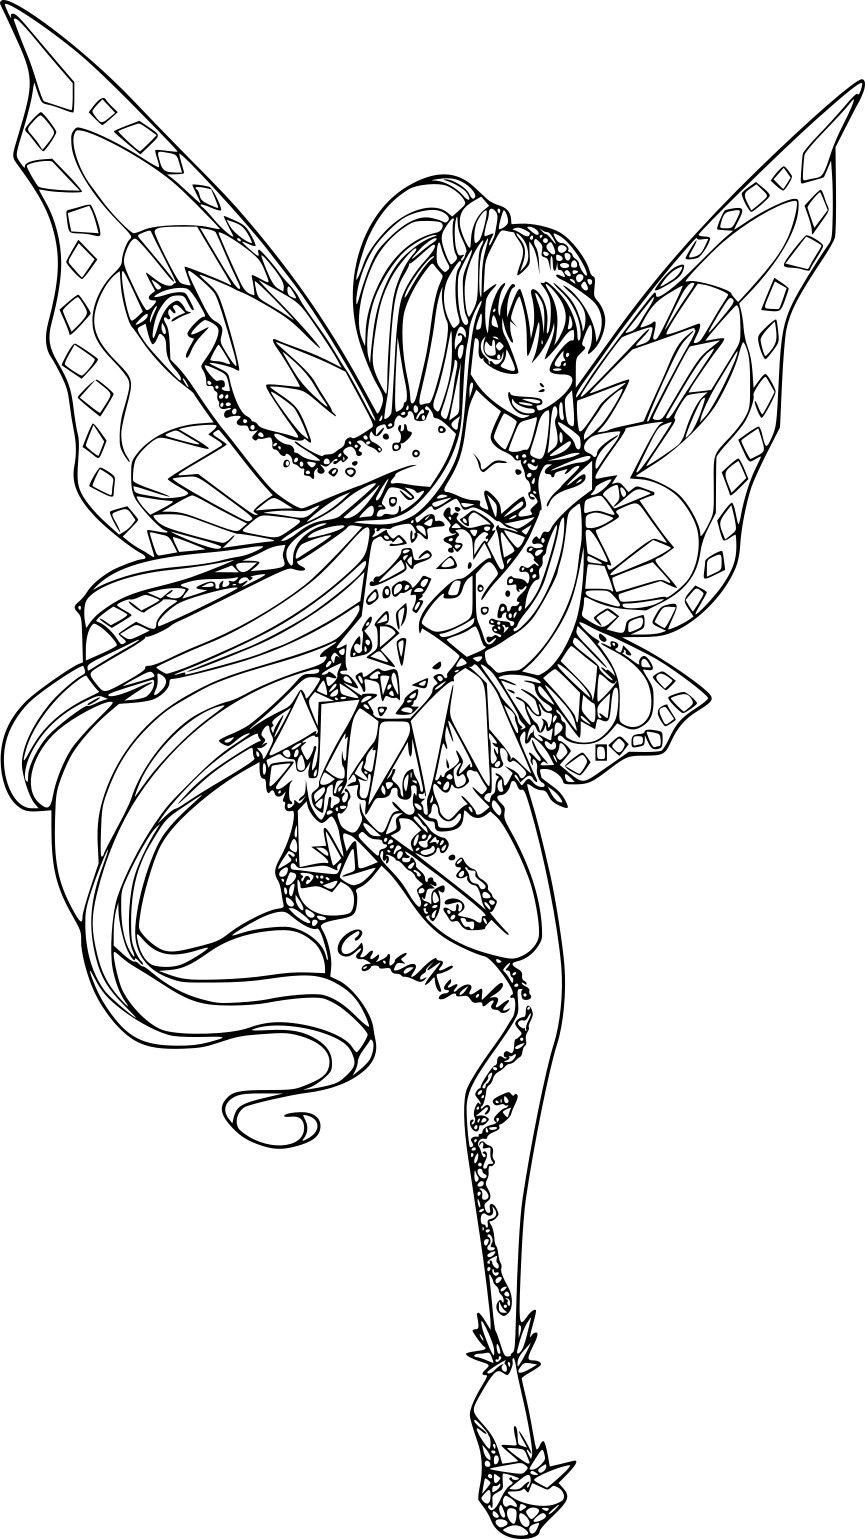 Winx Club Coloring Pages Unique Pin By Monica Johnson On Pencilmein Mermaid Coloring Pages Coloring Pages Cute Coloring Pages